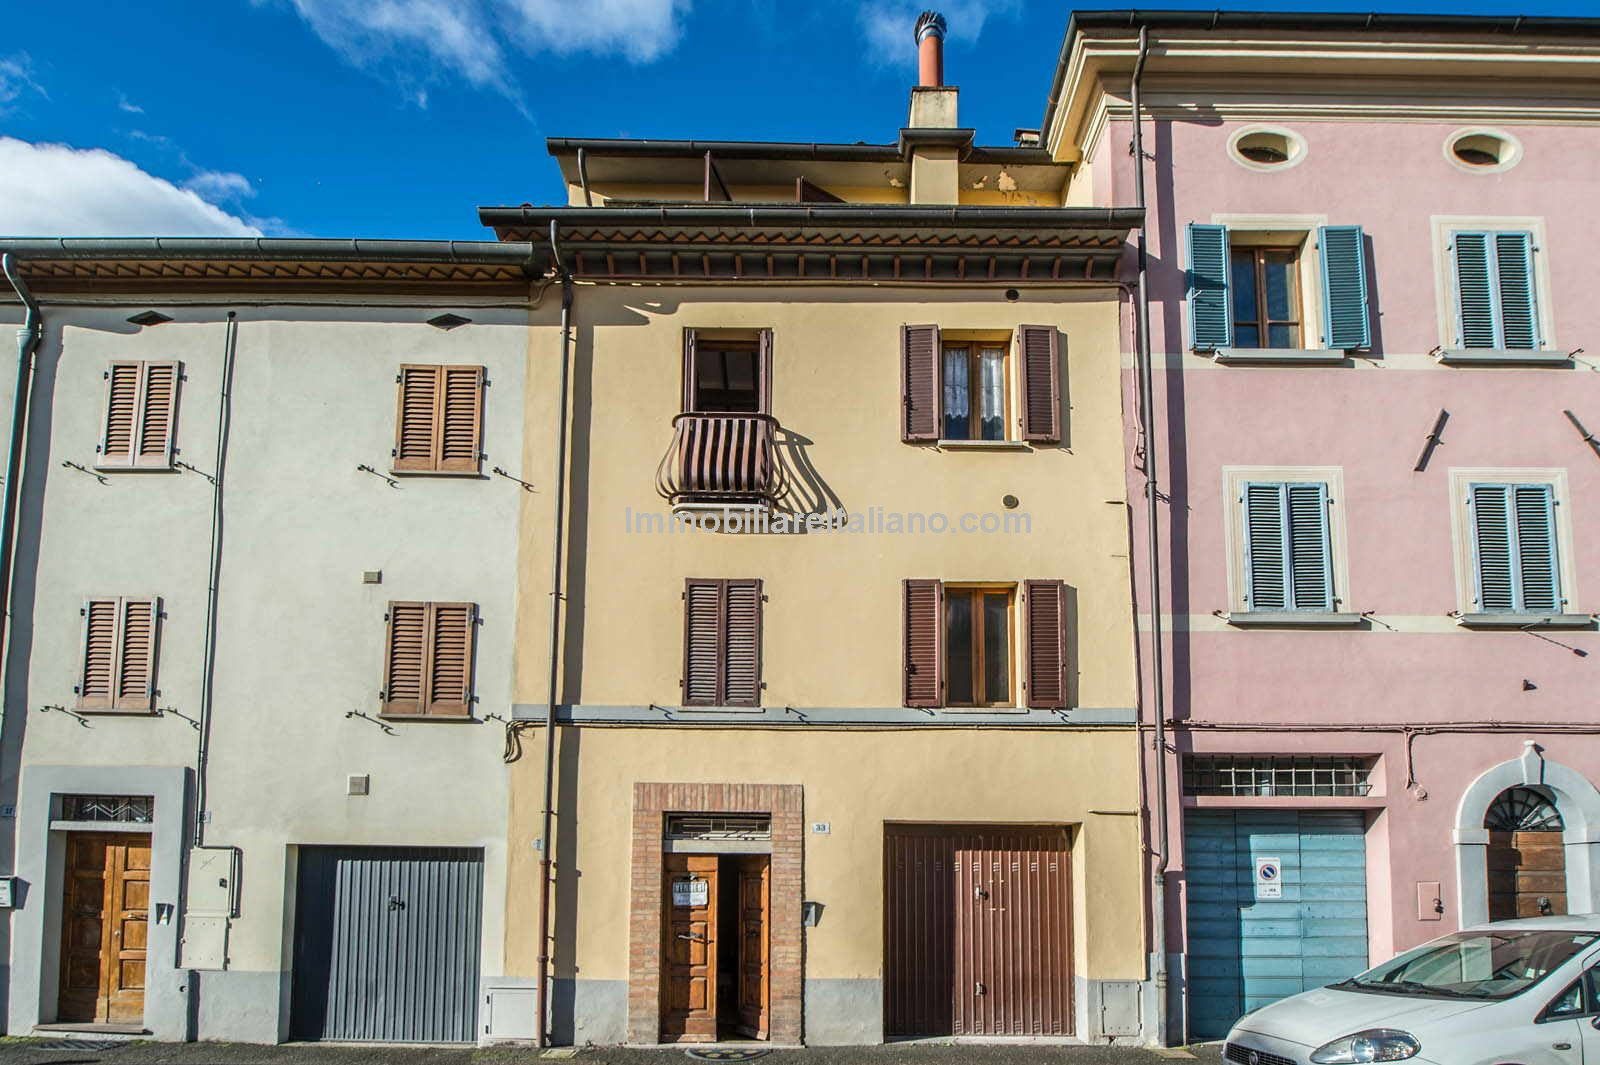 Property to renovate in Italy